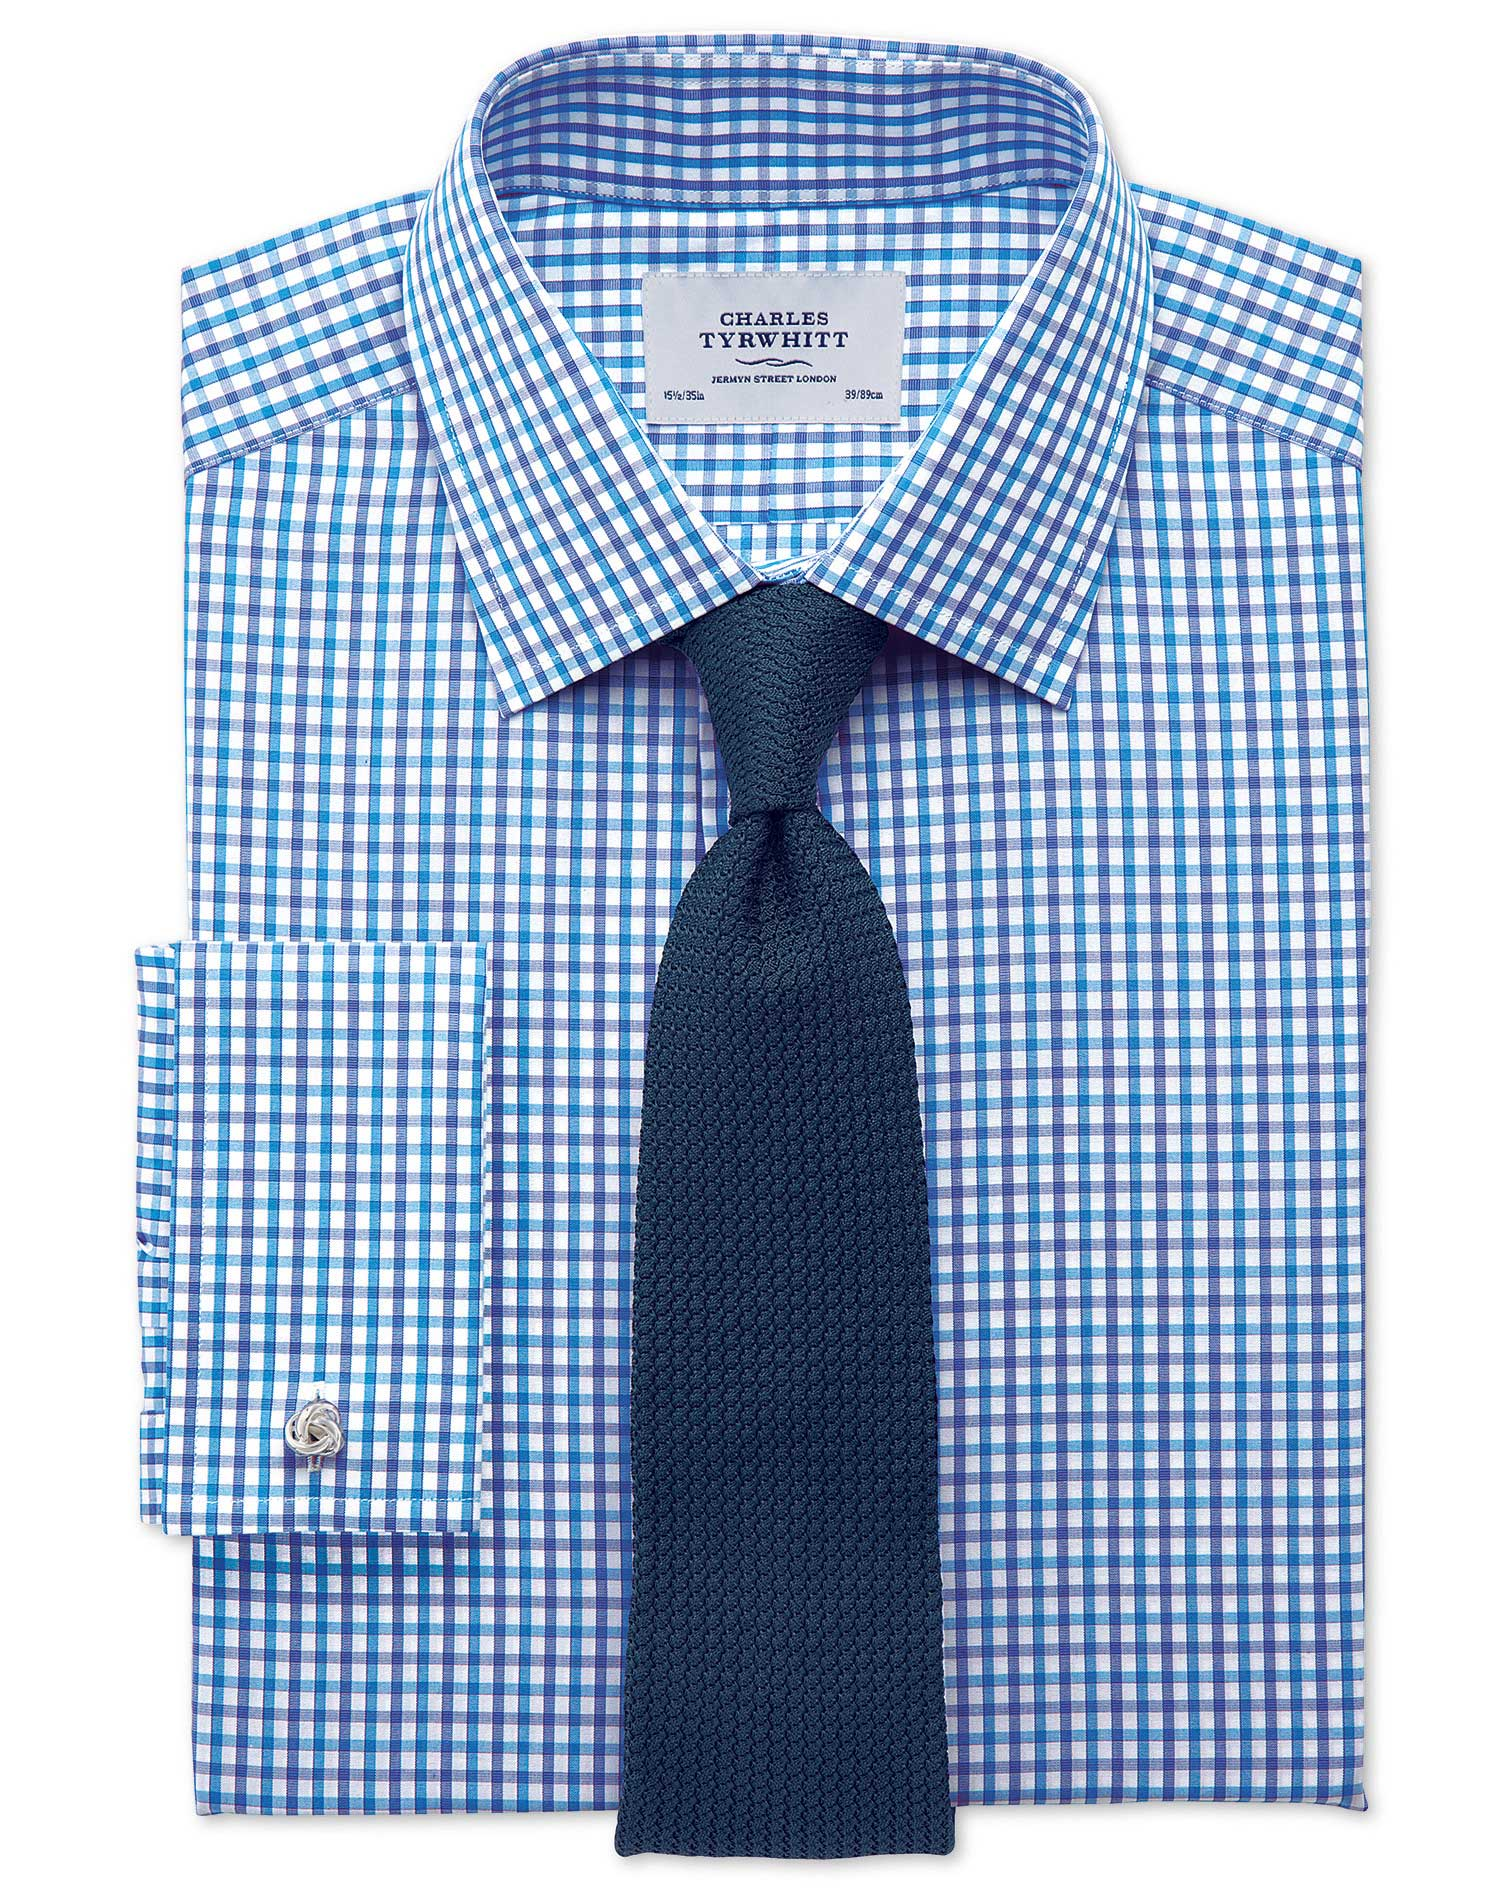 Extra Slim Fit Two Colour Check Blue Cotton Formal Shirt Double Cuff Size 14.5/33 by Charles Tyrwhit